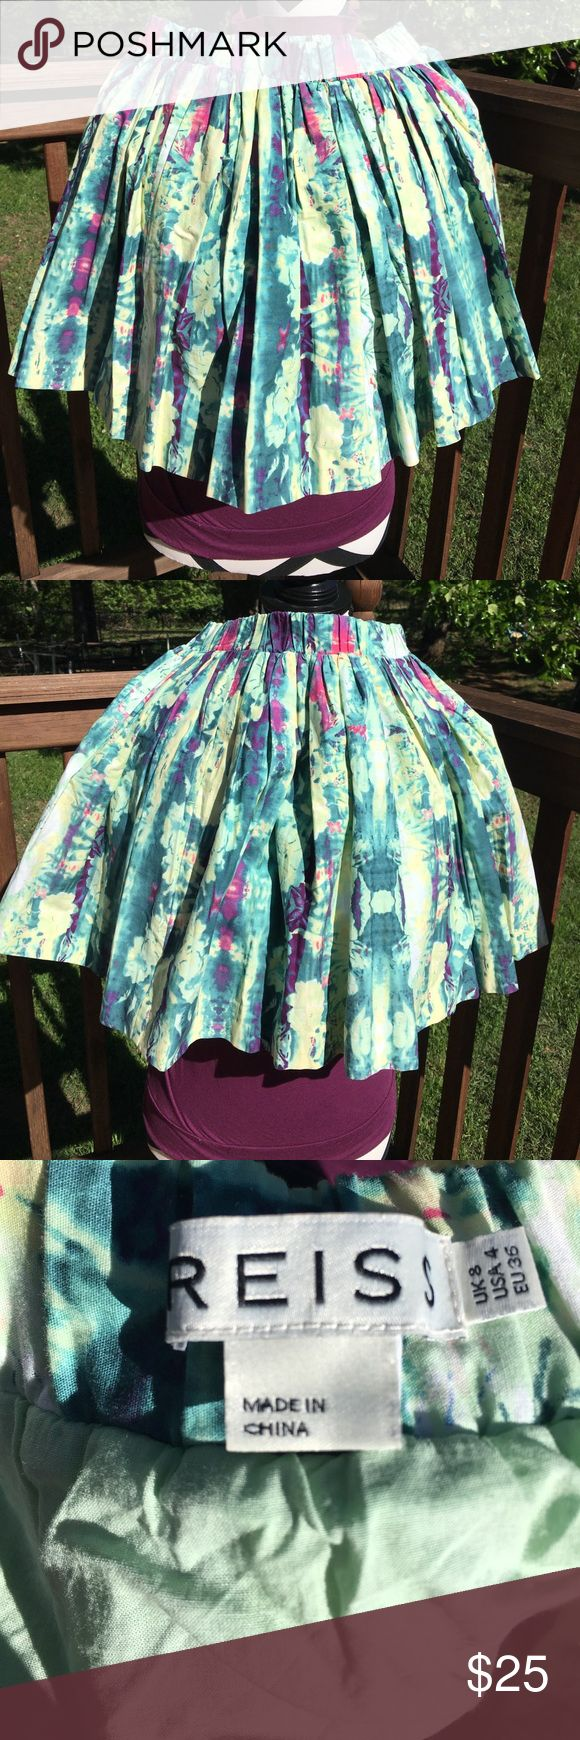 "Reiss floral print skirt Reiss skirt. Elastic waist. Unstretched it is approx 13.5"" and it is approx 16"" long. Tag says US 4 but listing as a medium bc of the stretch. Multicolored pastels. Fully lined. Reiss Skirts"